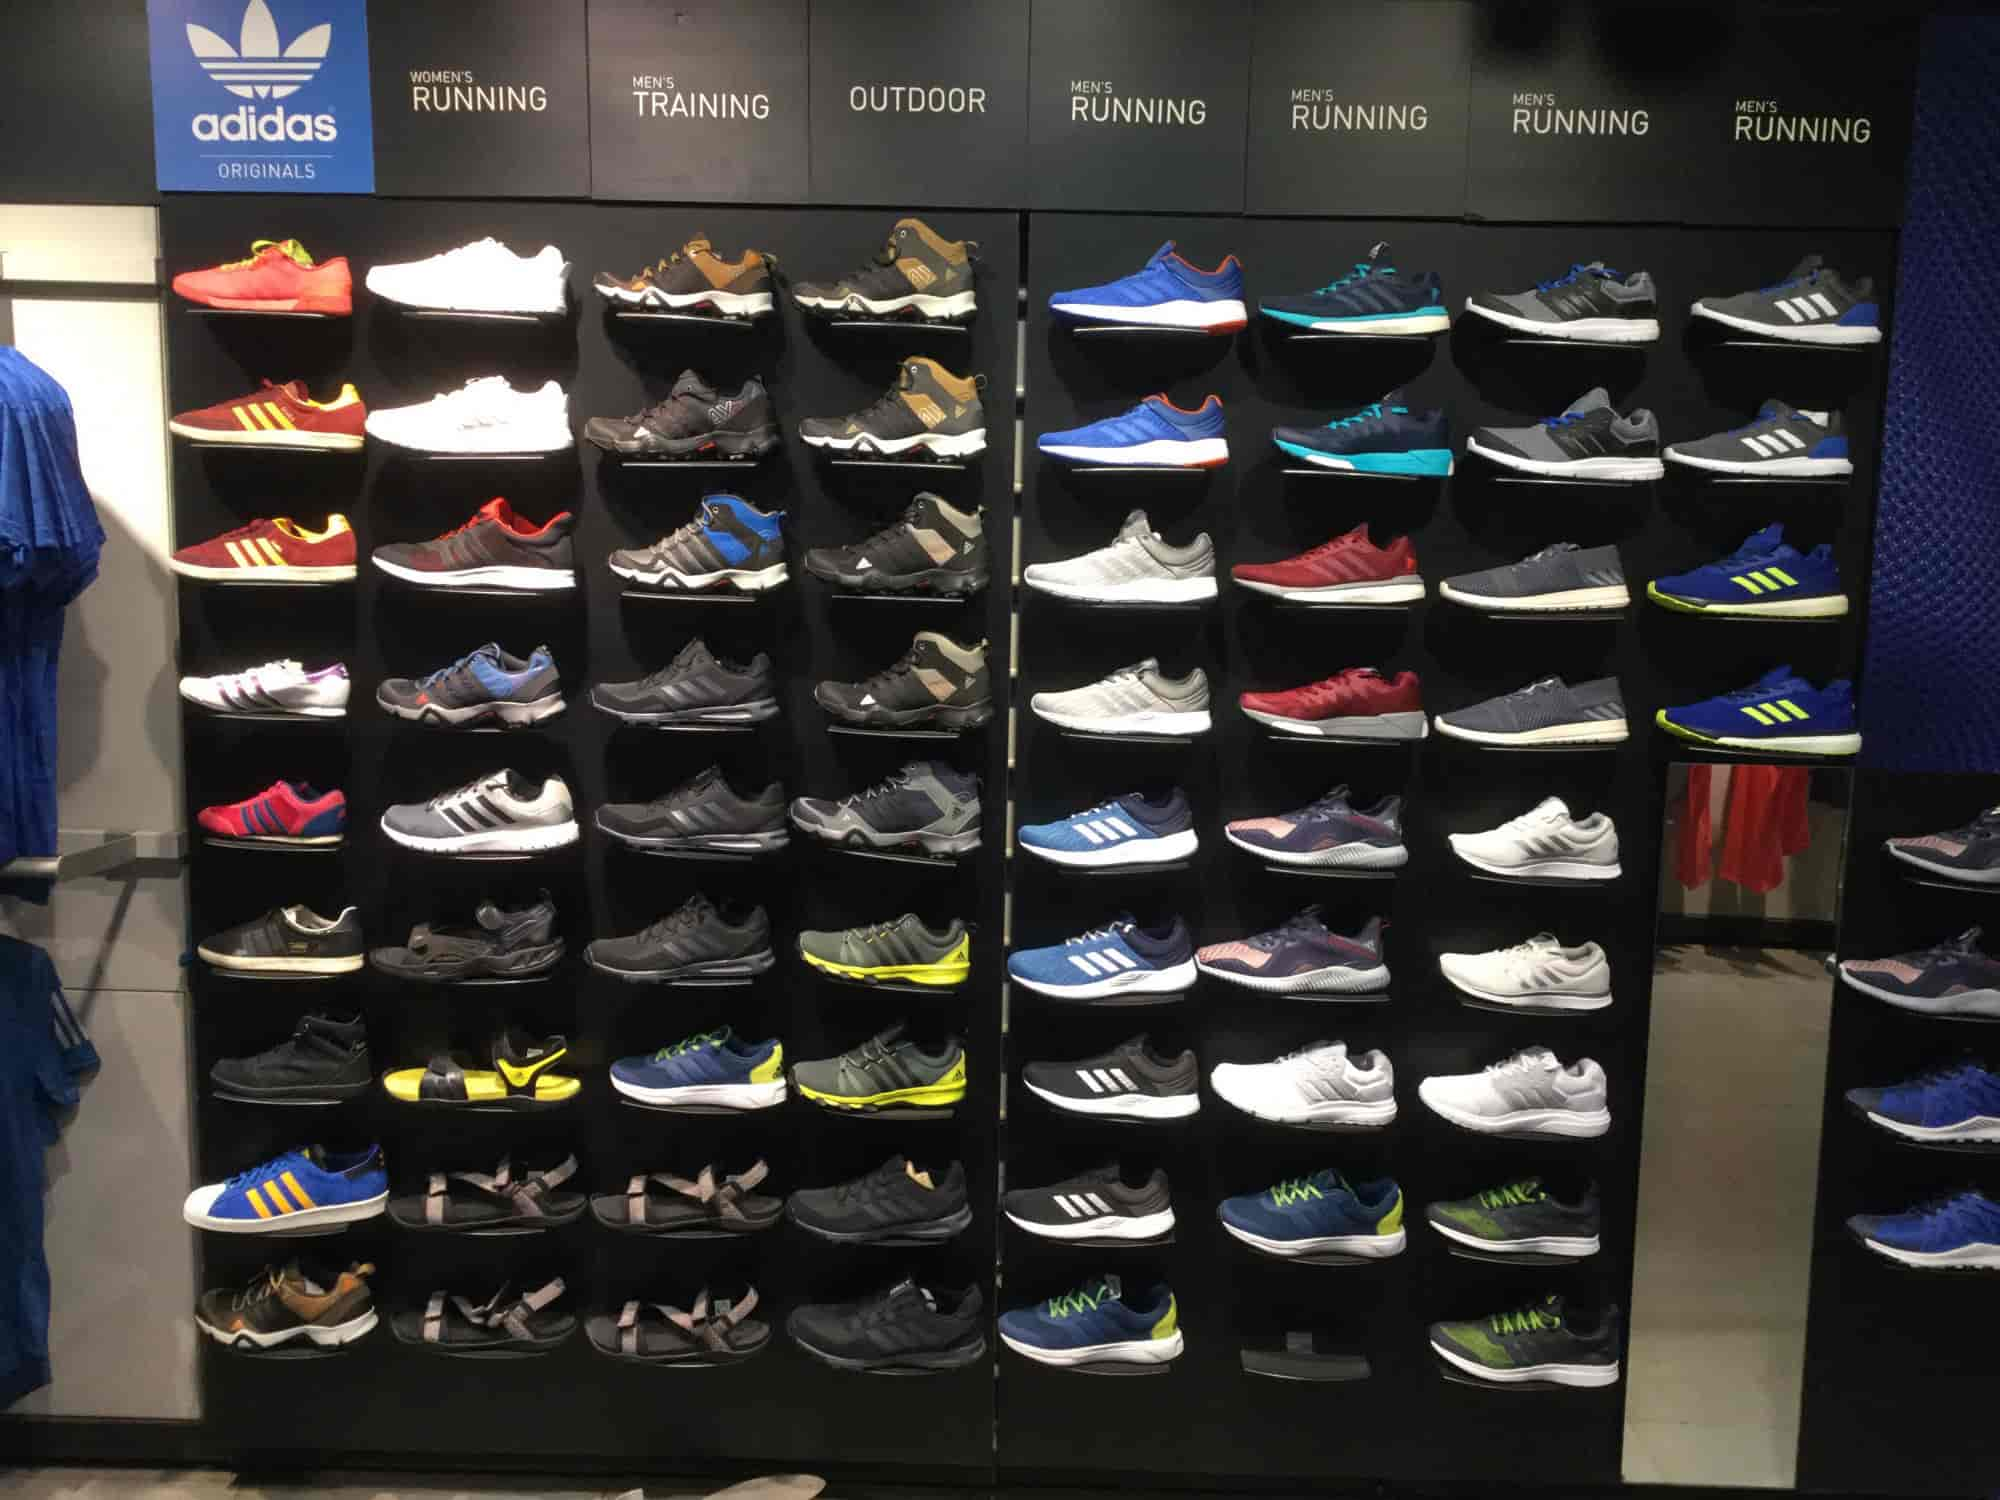 Residuos valor Antemano  adidas showroom near me,Free Shipping,OFF76%,ID=5